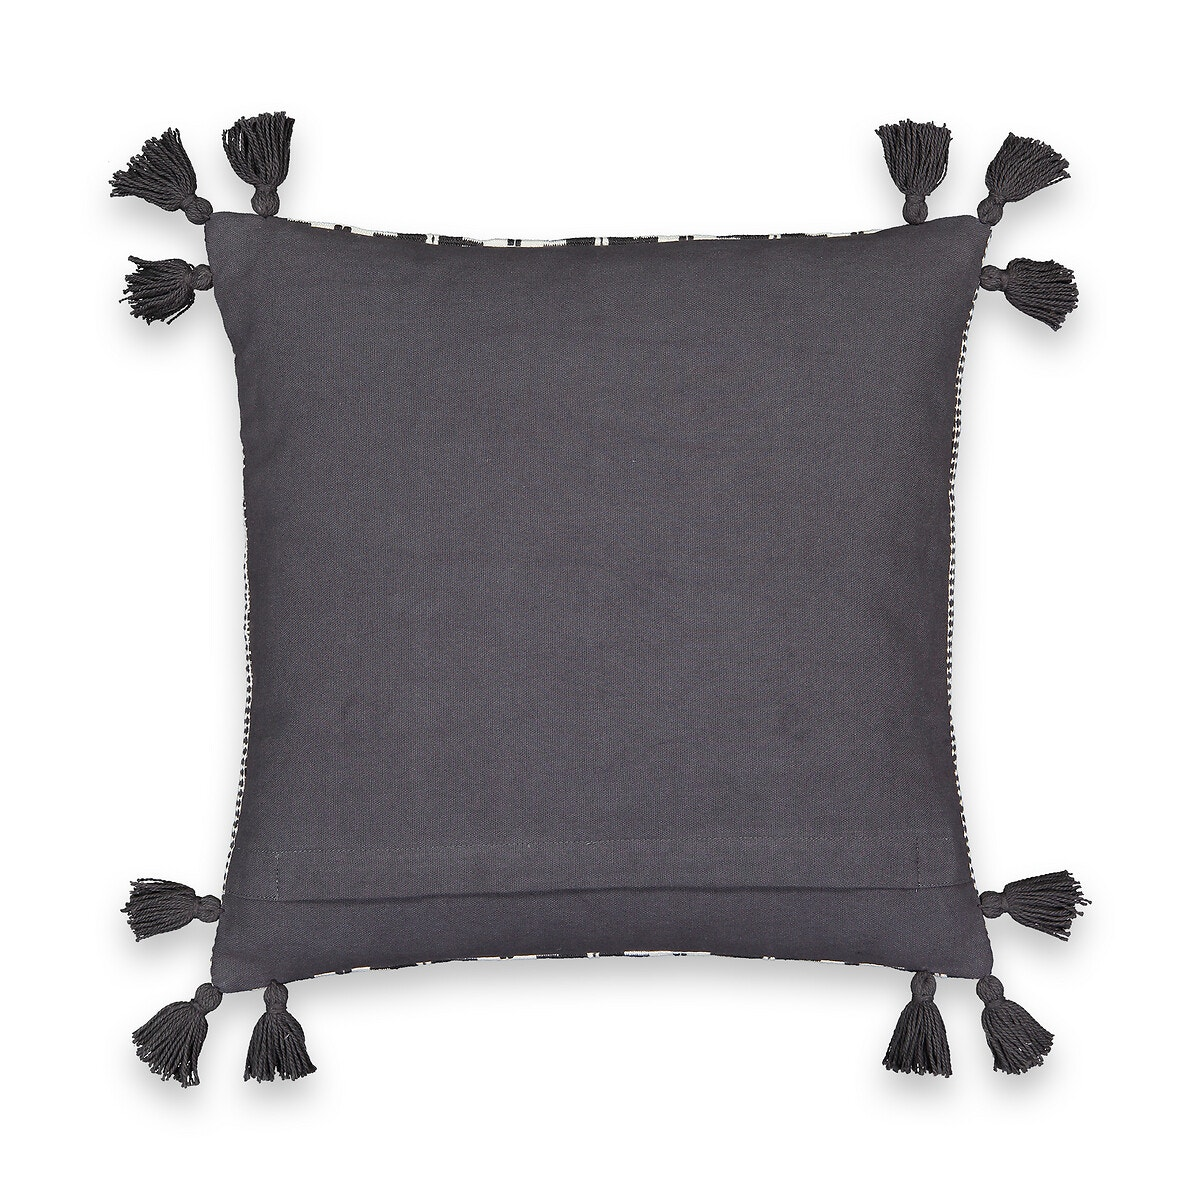 Azia Cushion Cover